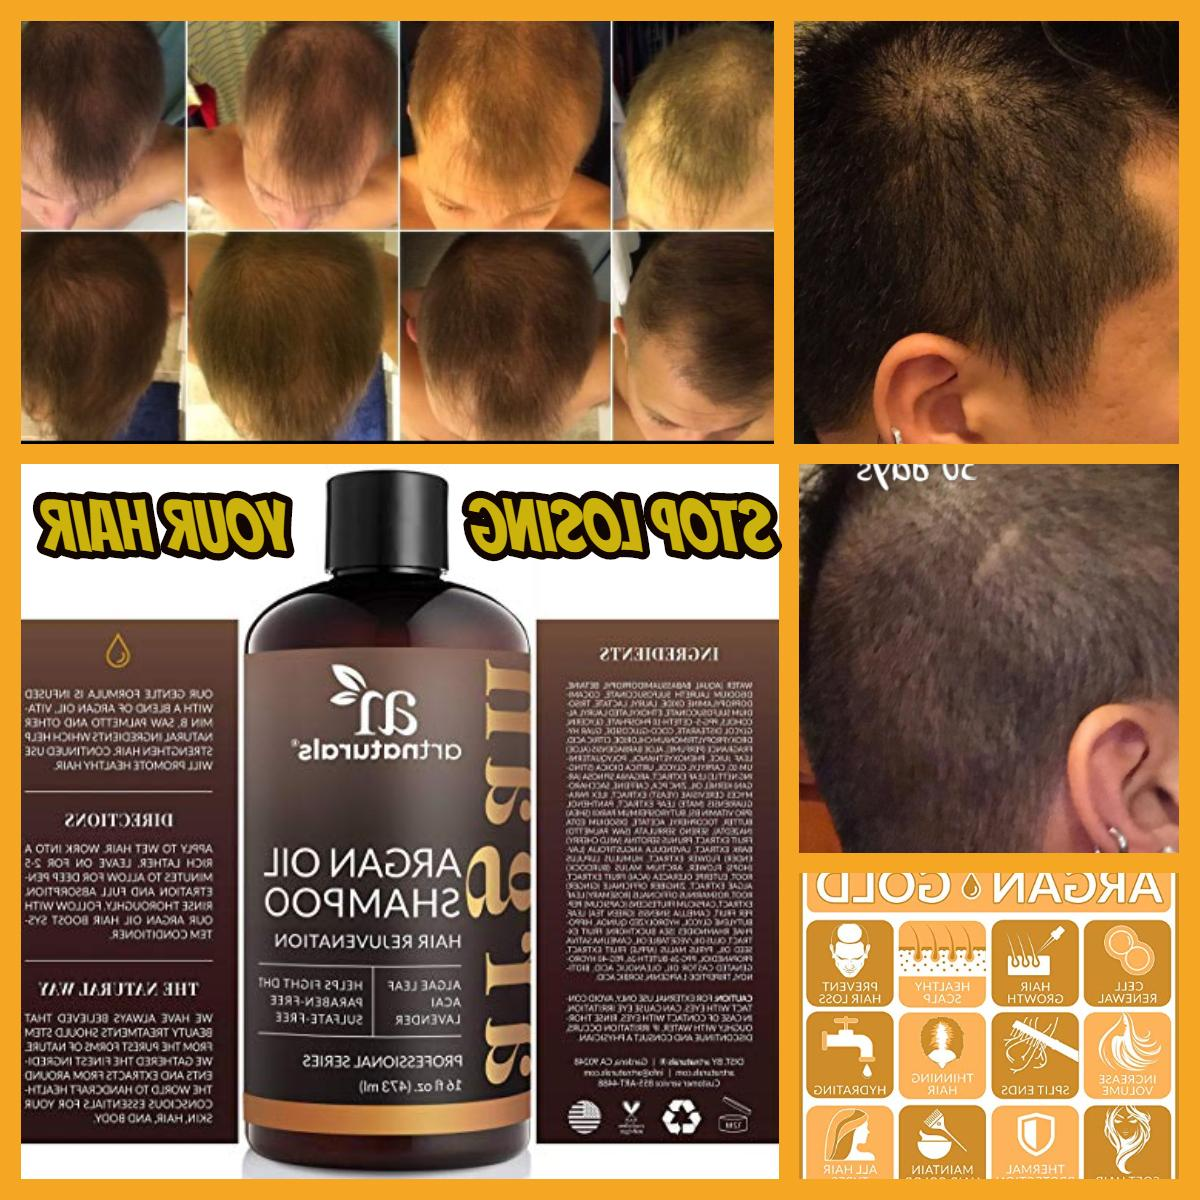 organic argan oil treatment for hair loss